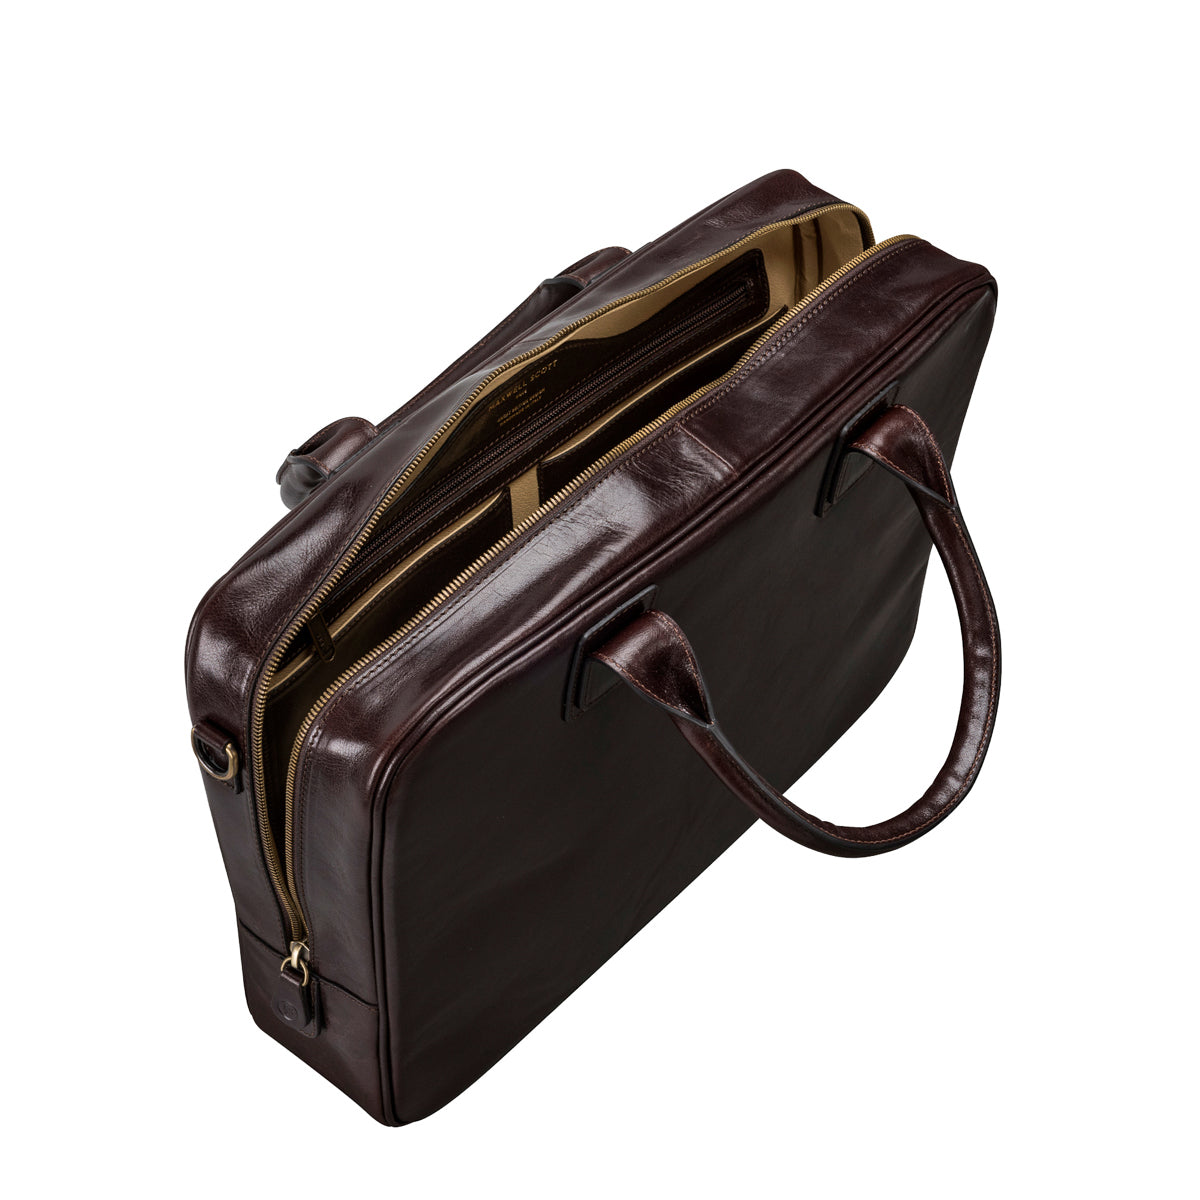 Image 5 of the 'Calvino' Dark Chocolate Veg-Tanned Leather Briefcase